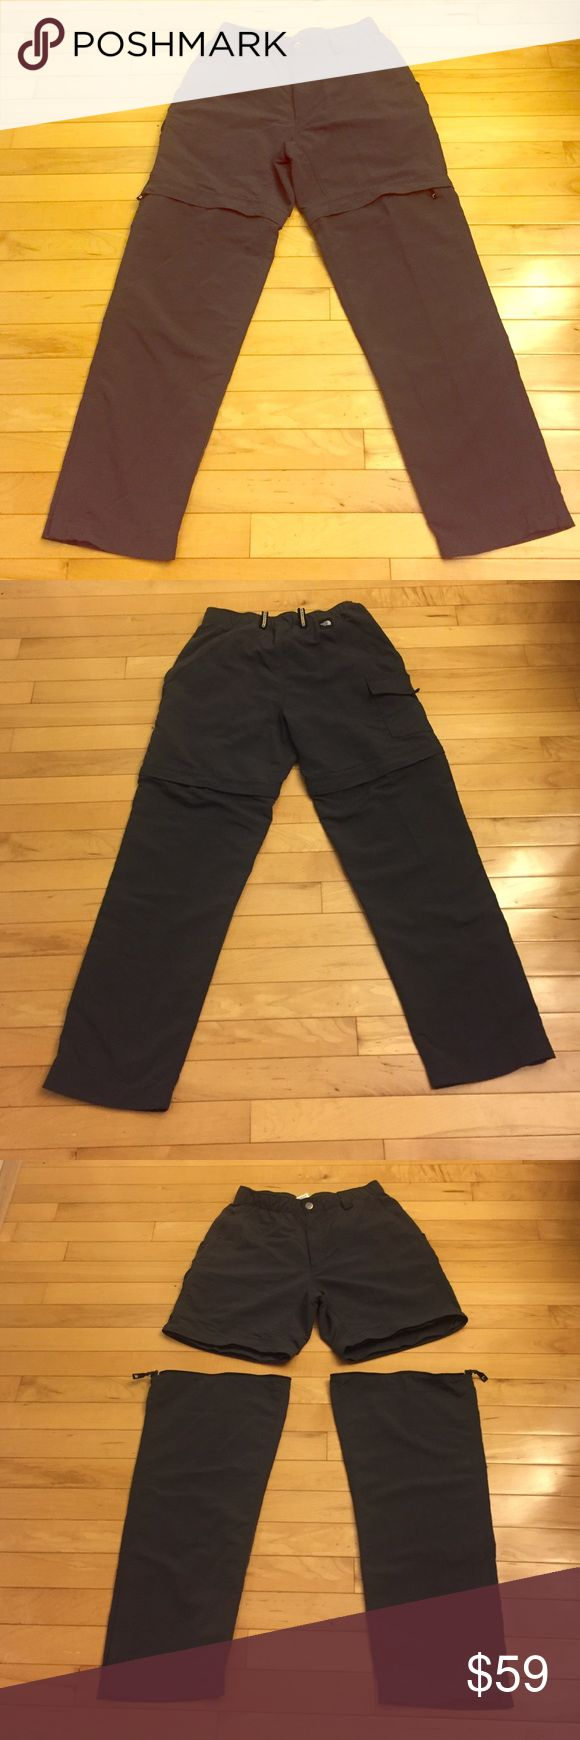 """North Face Pants Size S These North Face pants size S are so practical and comfortable! They are in like new condition! You can unzip the bottom and then wear them as shorts! 100% nylon. There are 5 pockets, two pockets in front, two pockets in the back and one pocket on the back side of the right leg. Inseam 28"""". North Face Pants Straight Leg"""